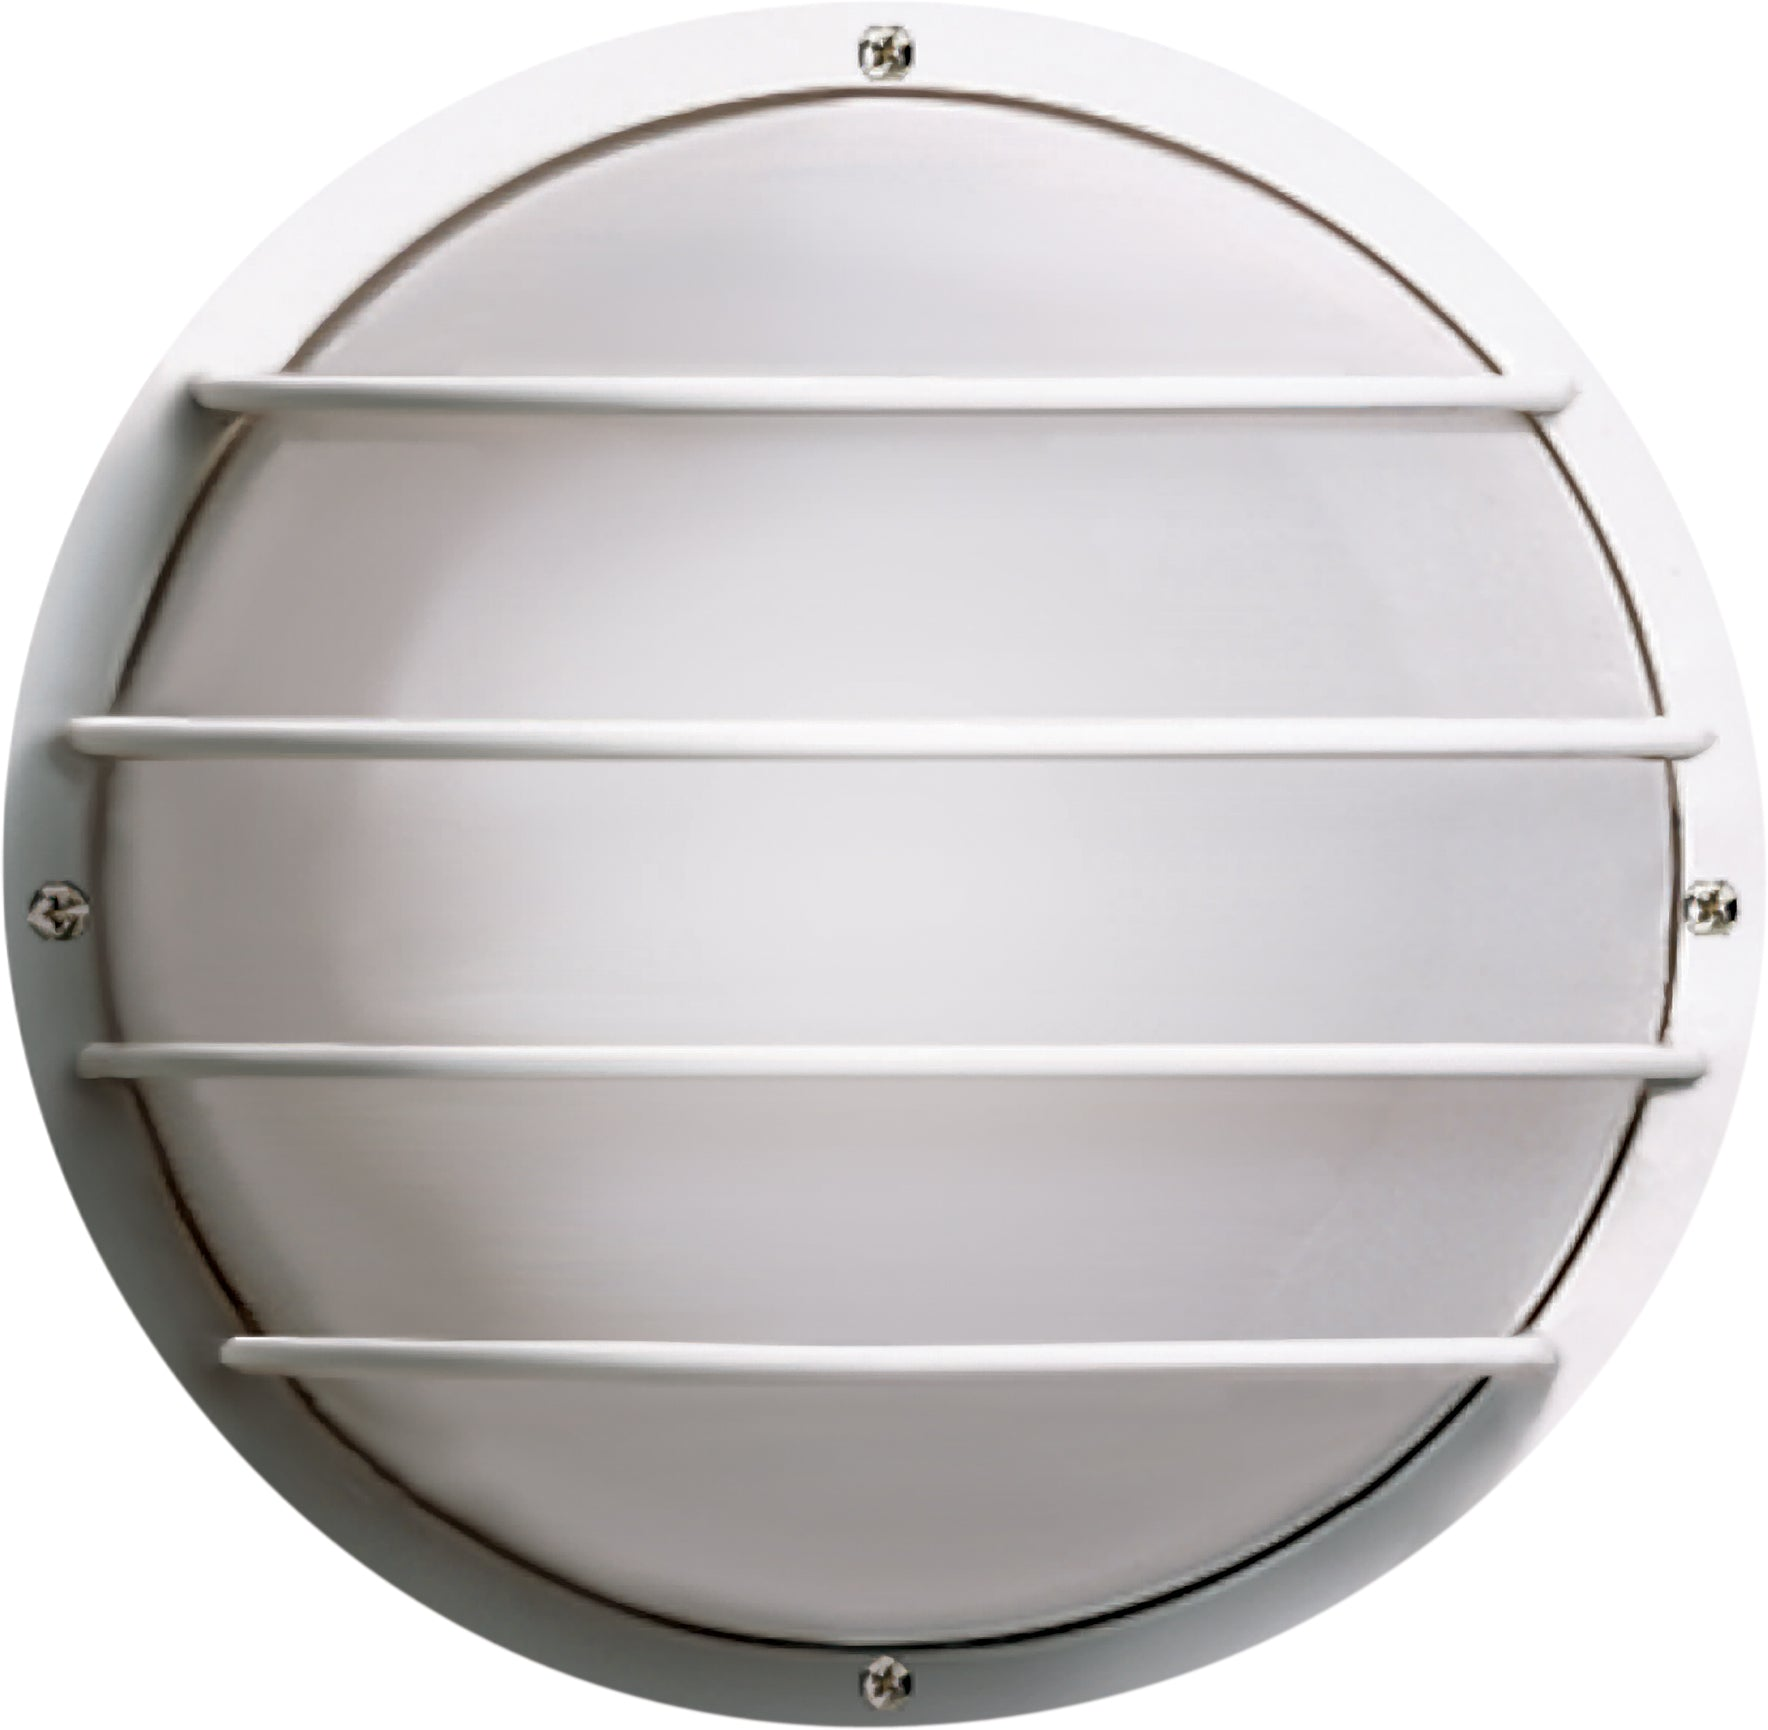 """Nuvo 2-Light CFL 10"""" Round Cage Wall Fixture 9w Twin Tube INCL in White Finish"""